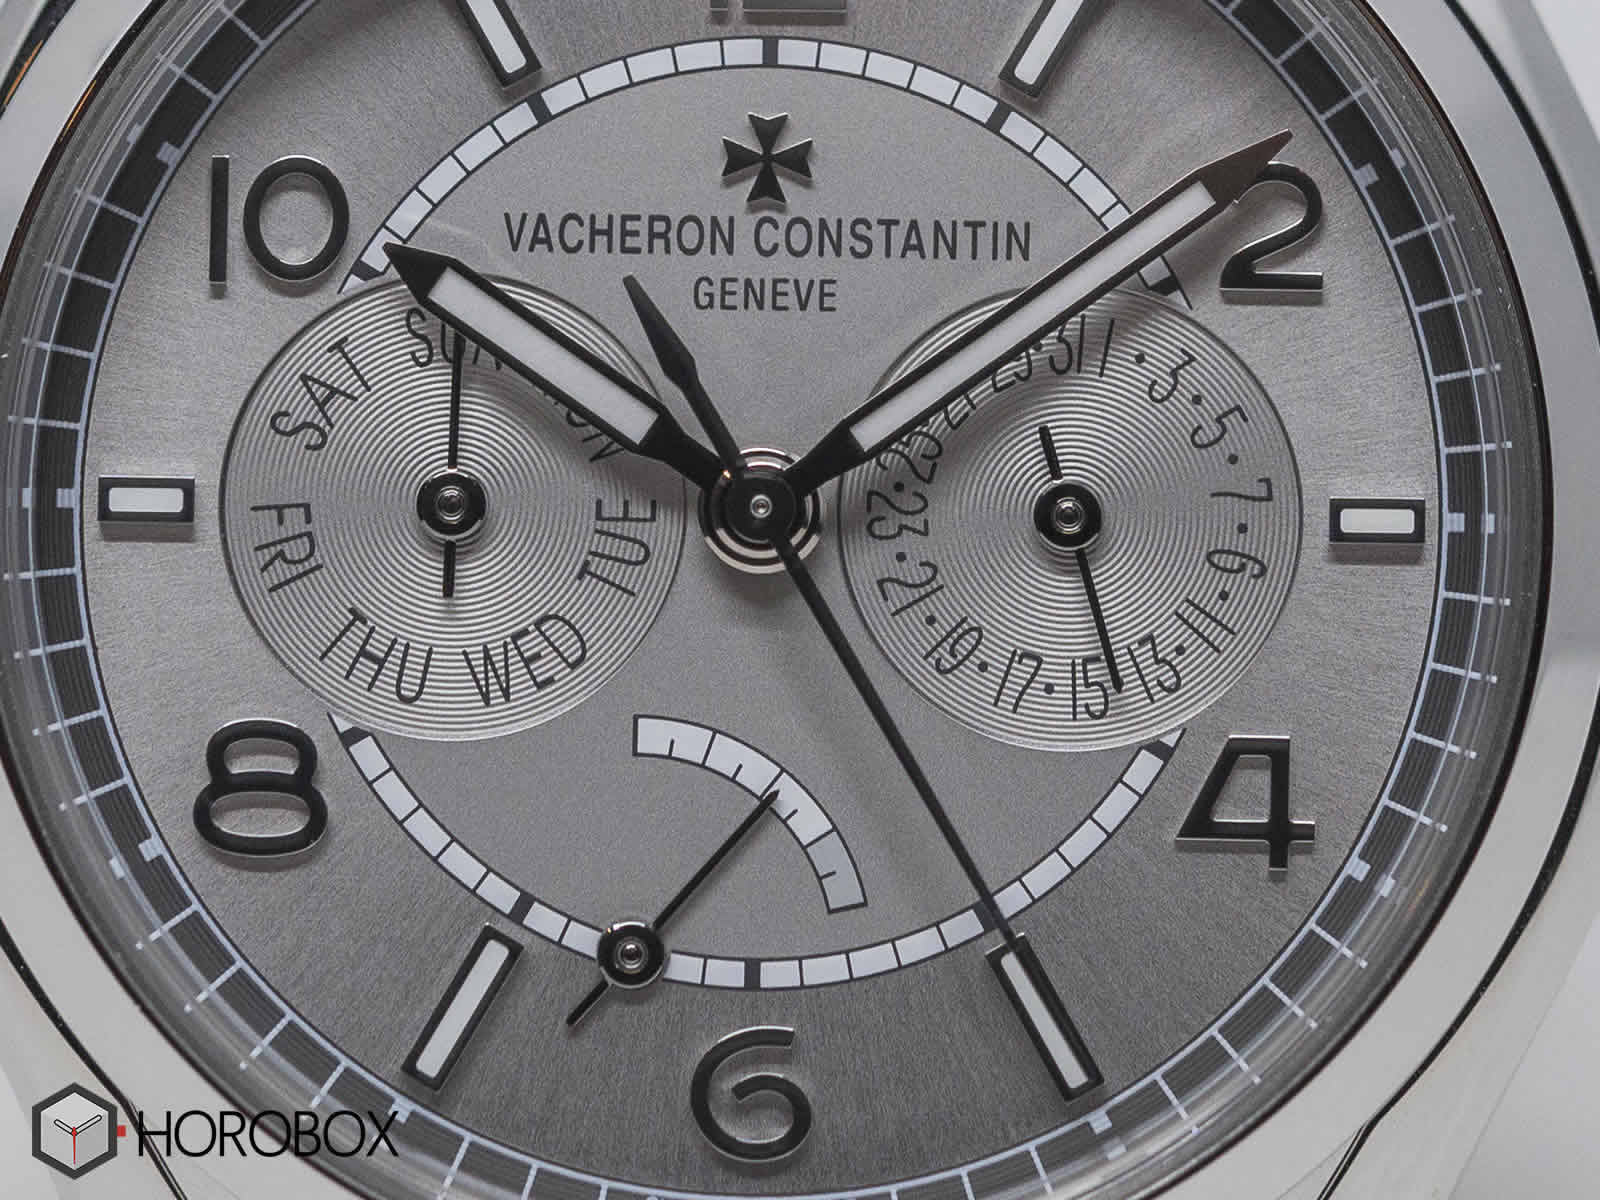 4400e-000a-b437-Vacheron-Constantin-Fifty-Six-Day-Date-2.jpg